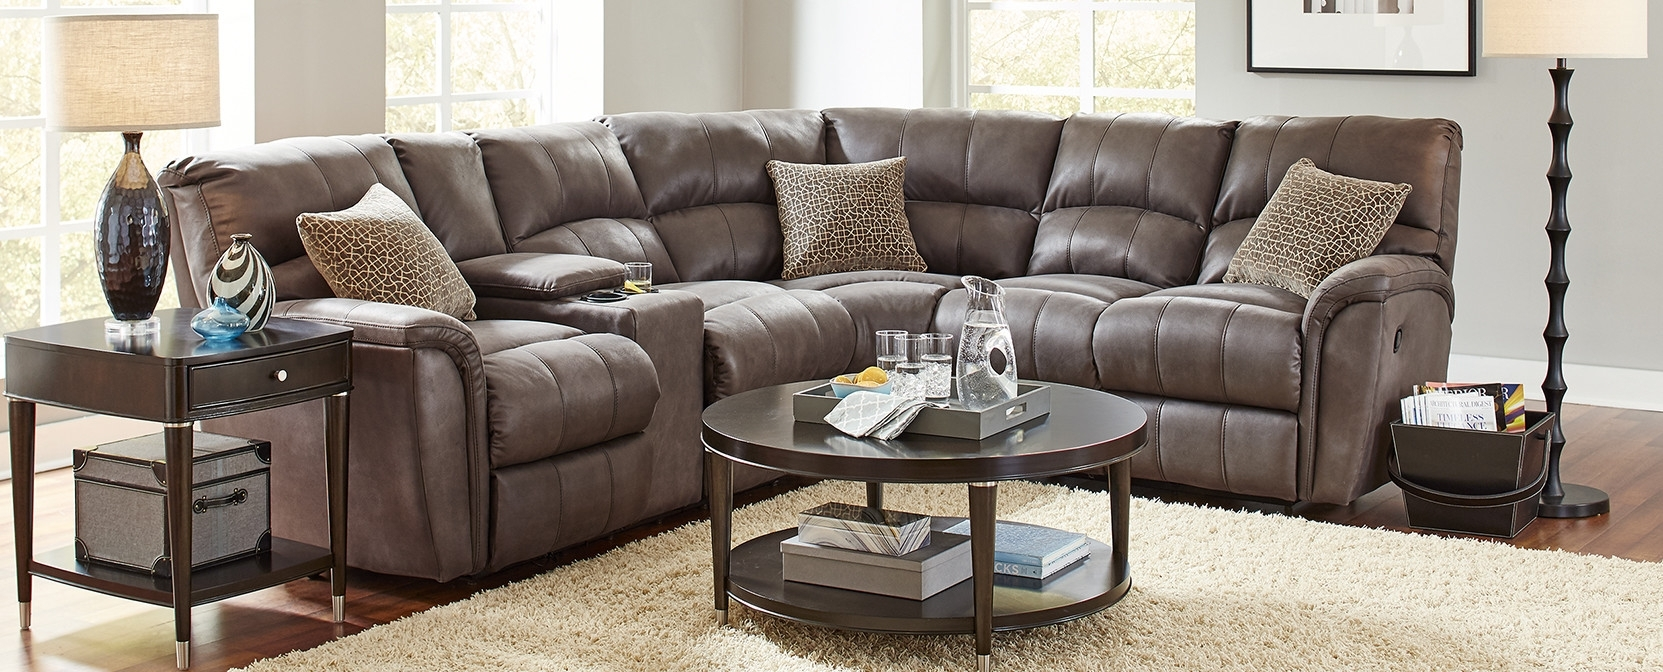 Furniture Sectional Sofa With Regard To Visalia Ca Sectional Sofas (Image 5 of 10)